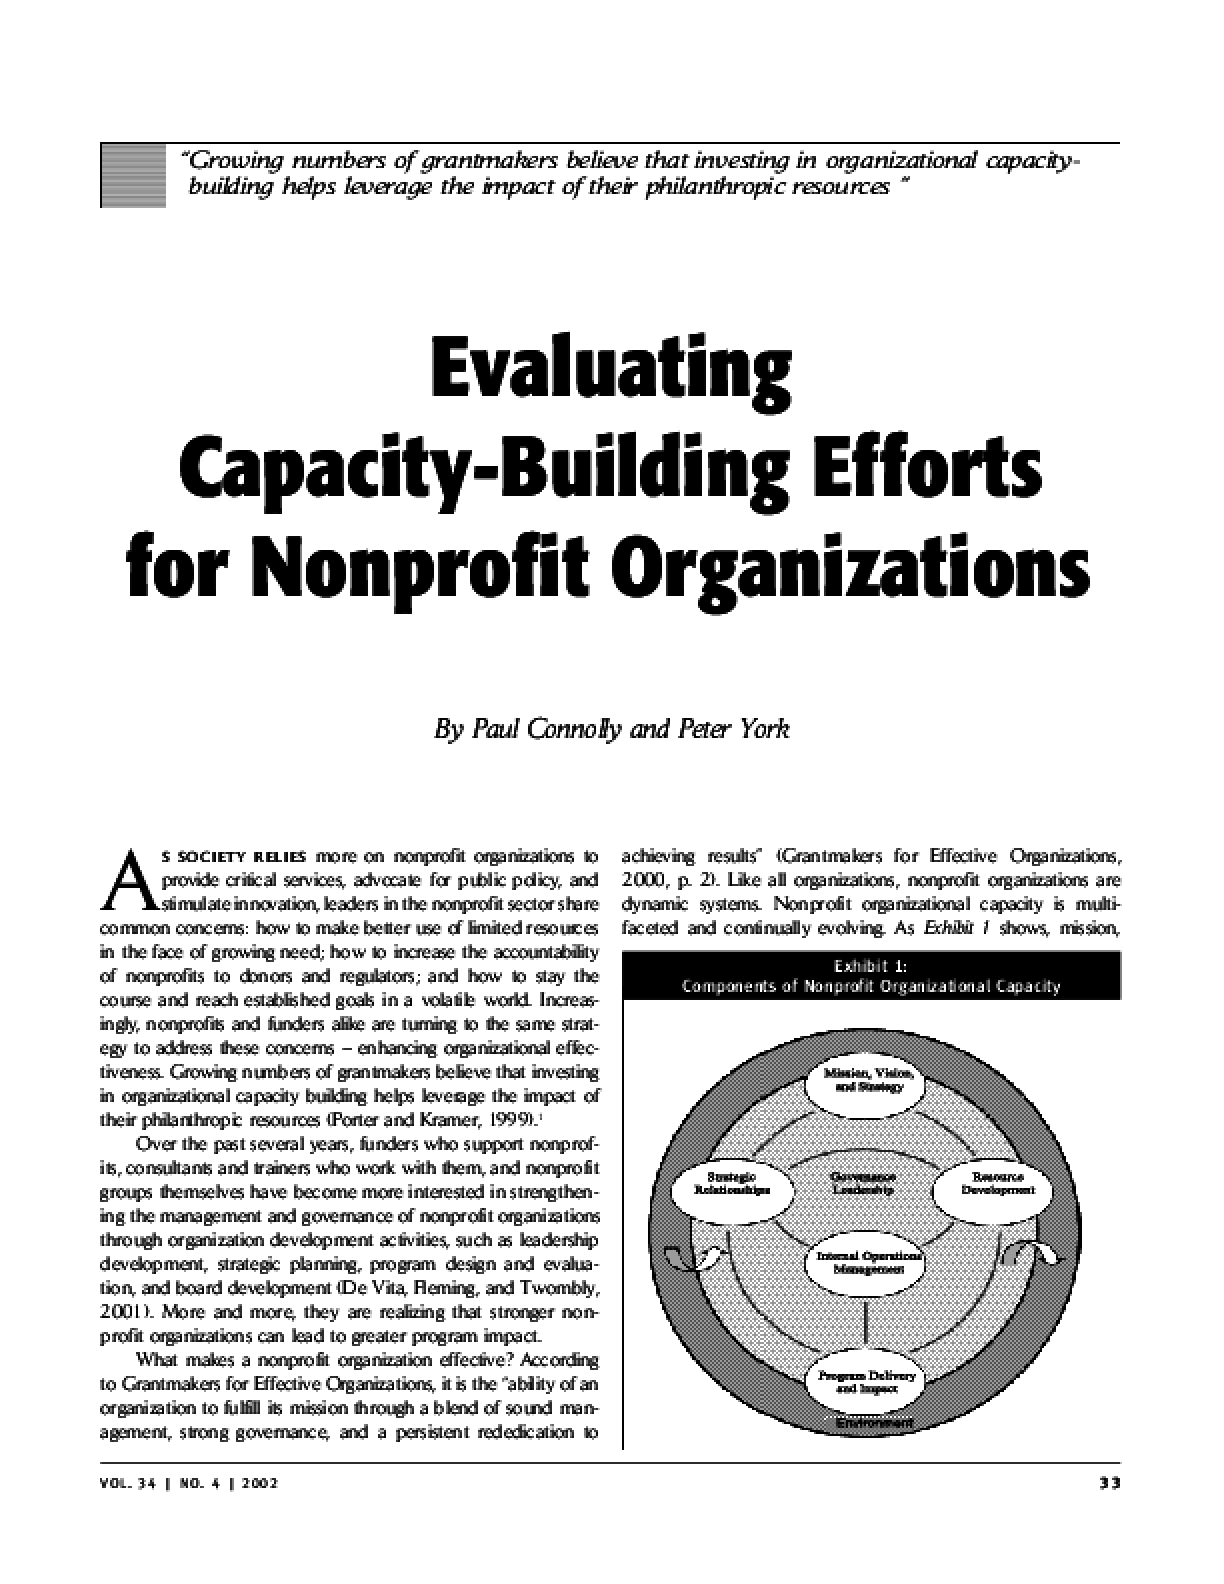 Evaluating Capacity-Building Efforts for Nonprofit Organizations